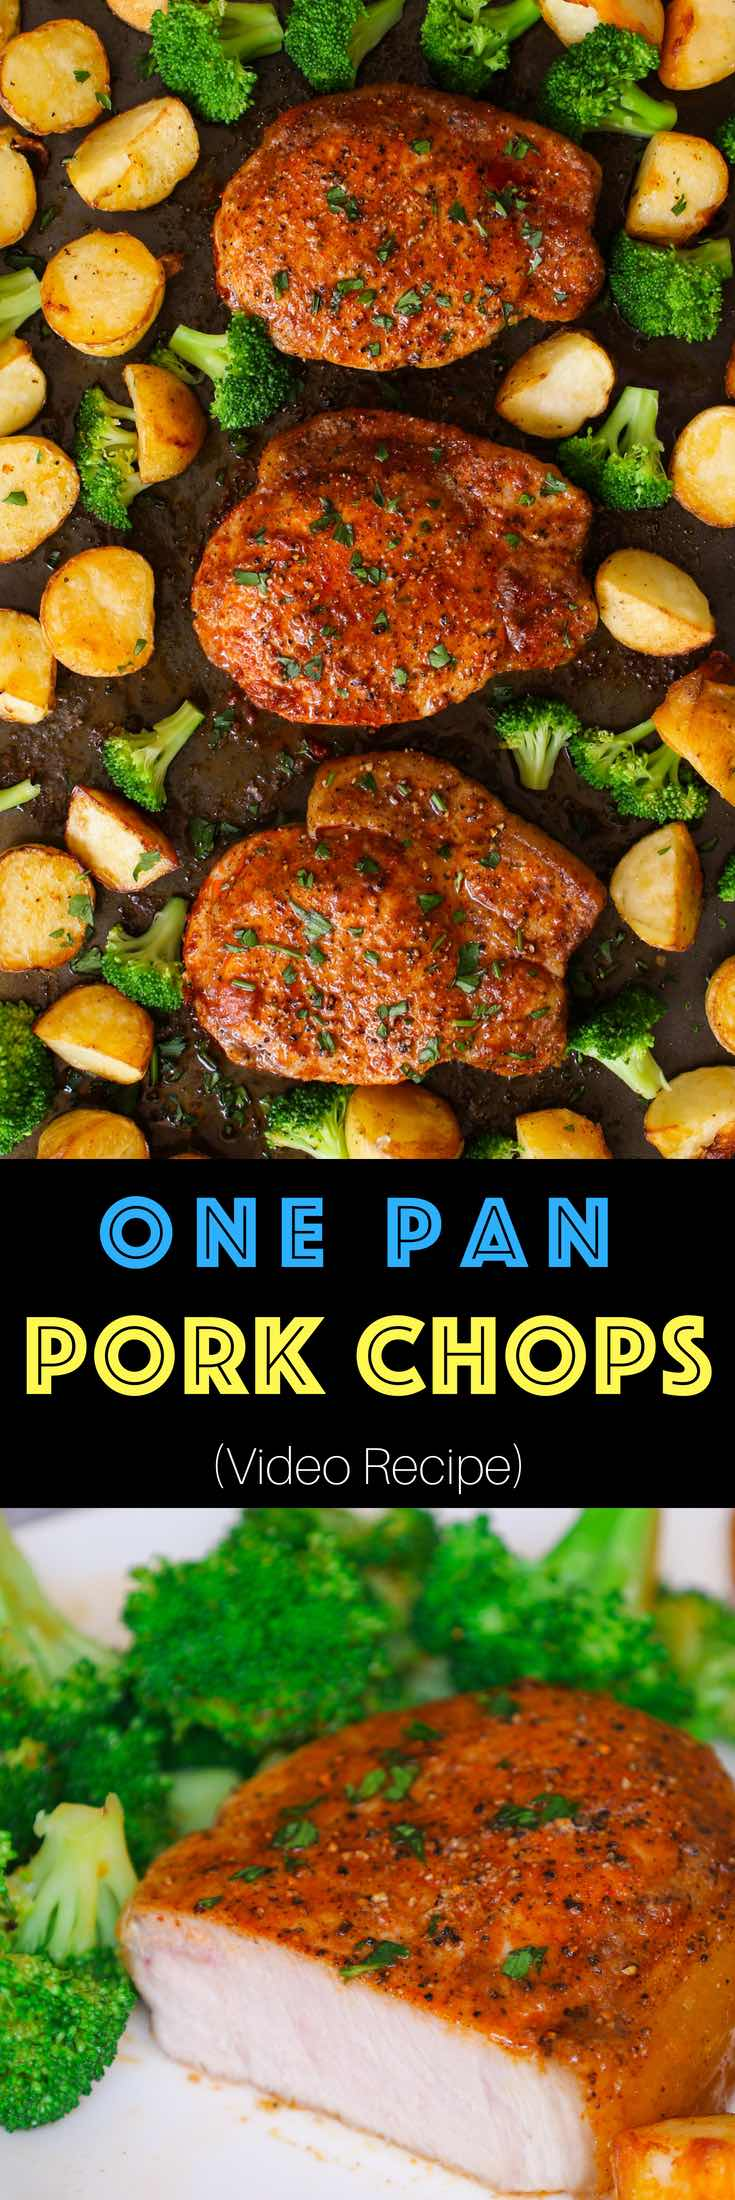 Easy Juicy Oven Baked Boneless Pork Chops are rubbed with a simple 4-ingredient seasoning and then baked until perfectly golden brown. Only one pan and 20 minutes for the moist and tender pork chops that's full of flavor. #BakedPorkChops